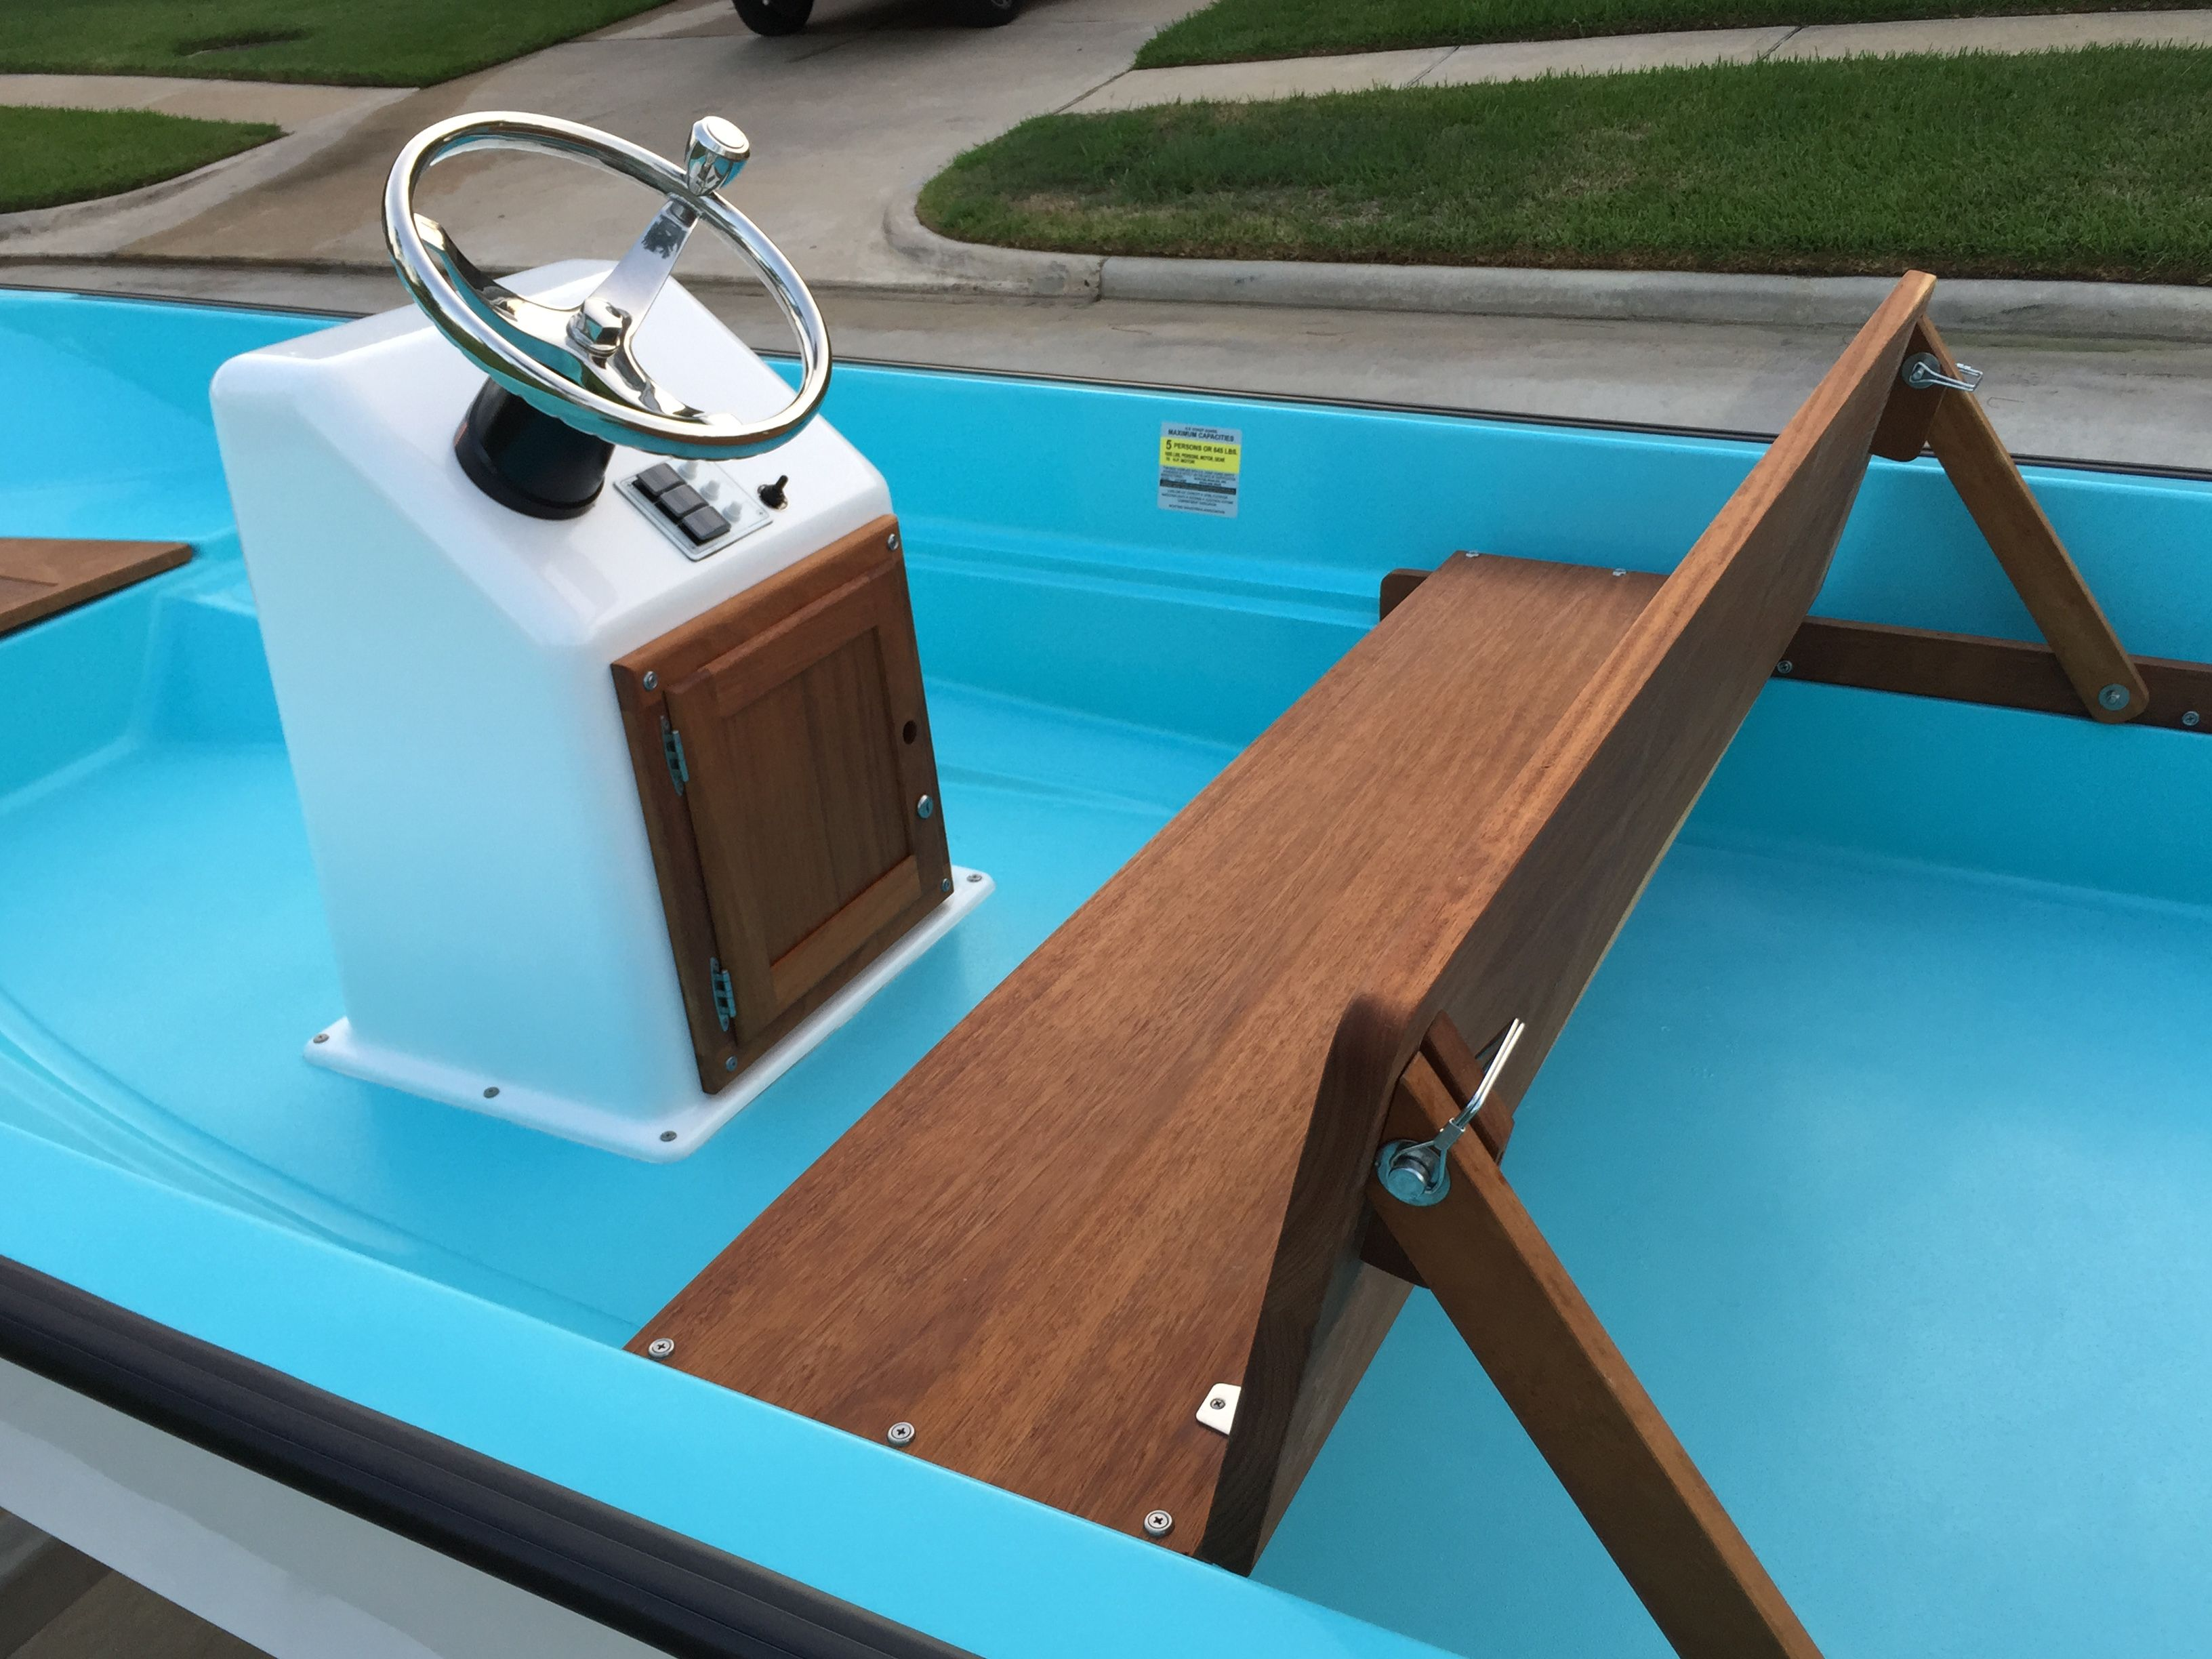 Pin By Jim Huempfner On Boston Whaler Boat Console Boston Whaler Boat Building